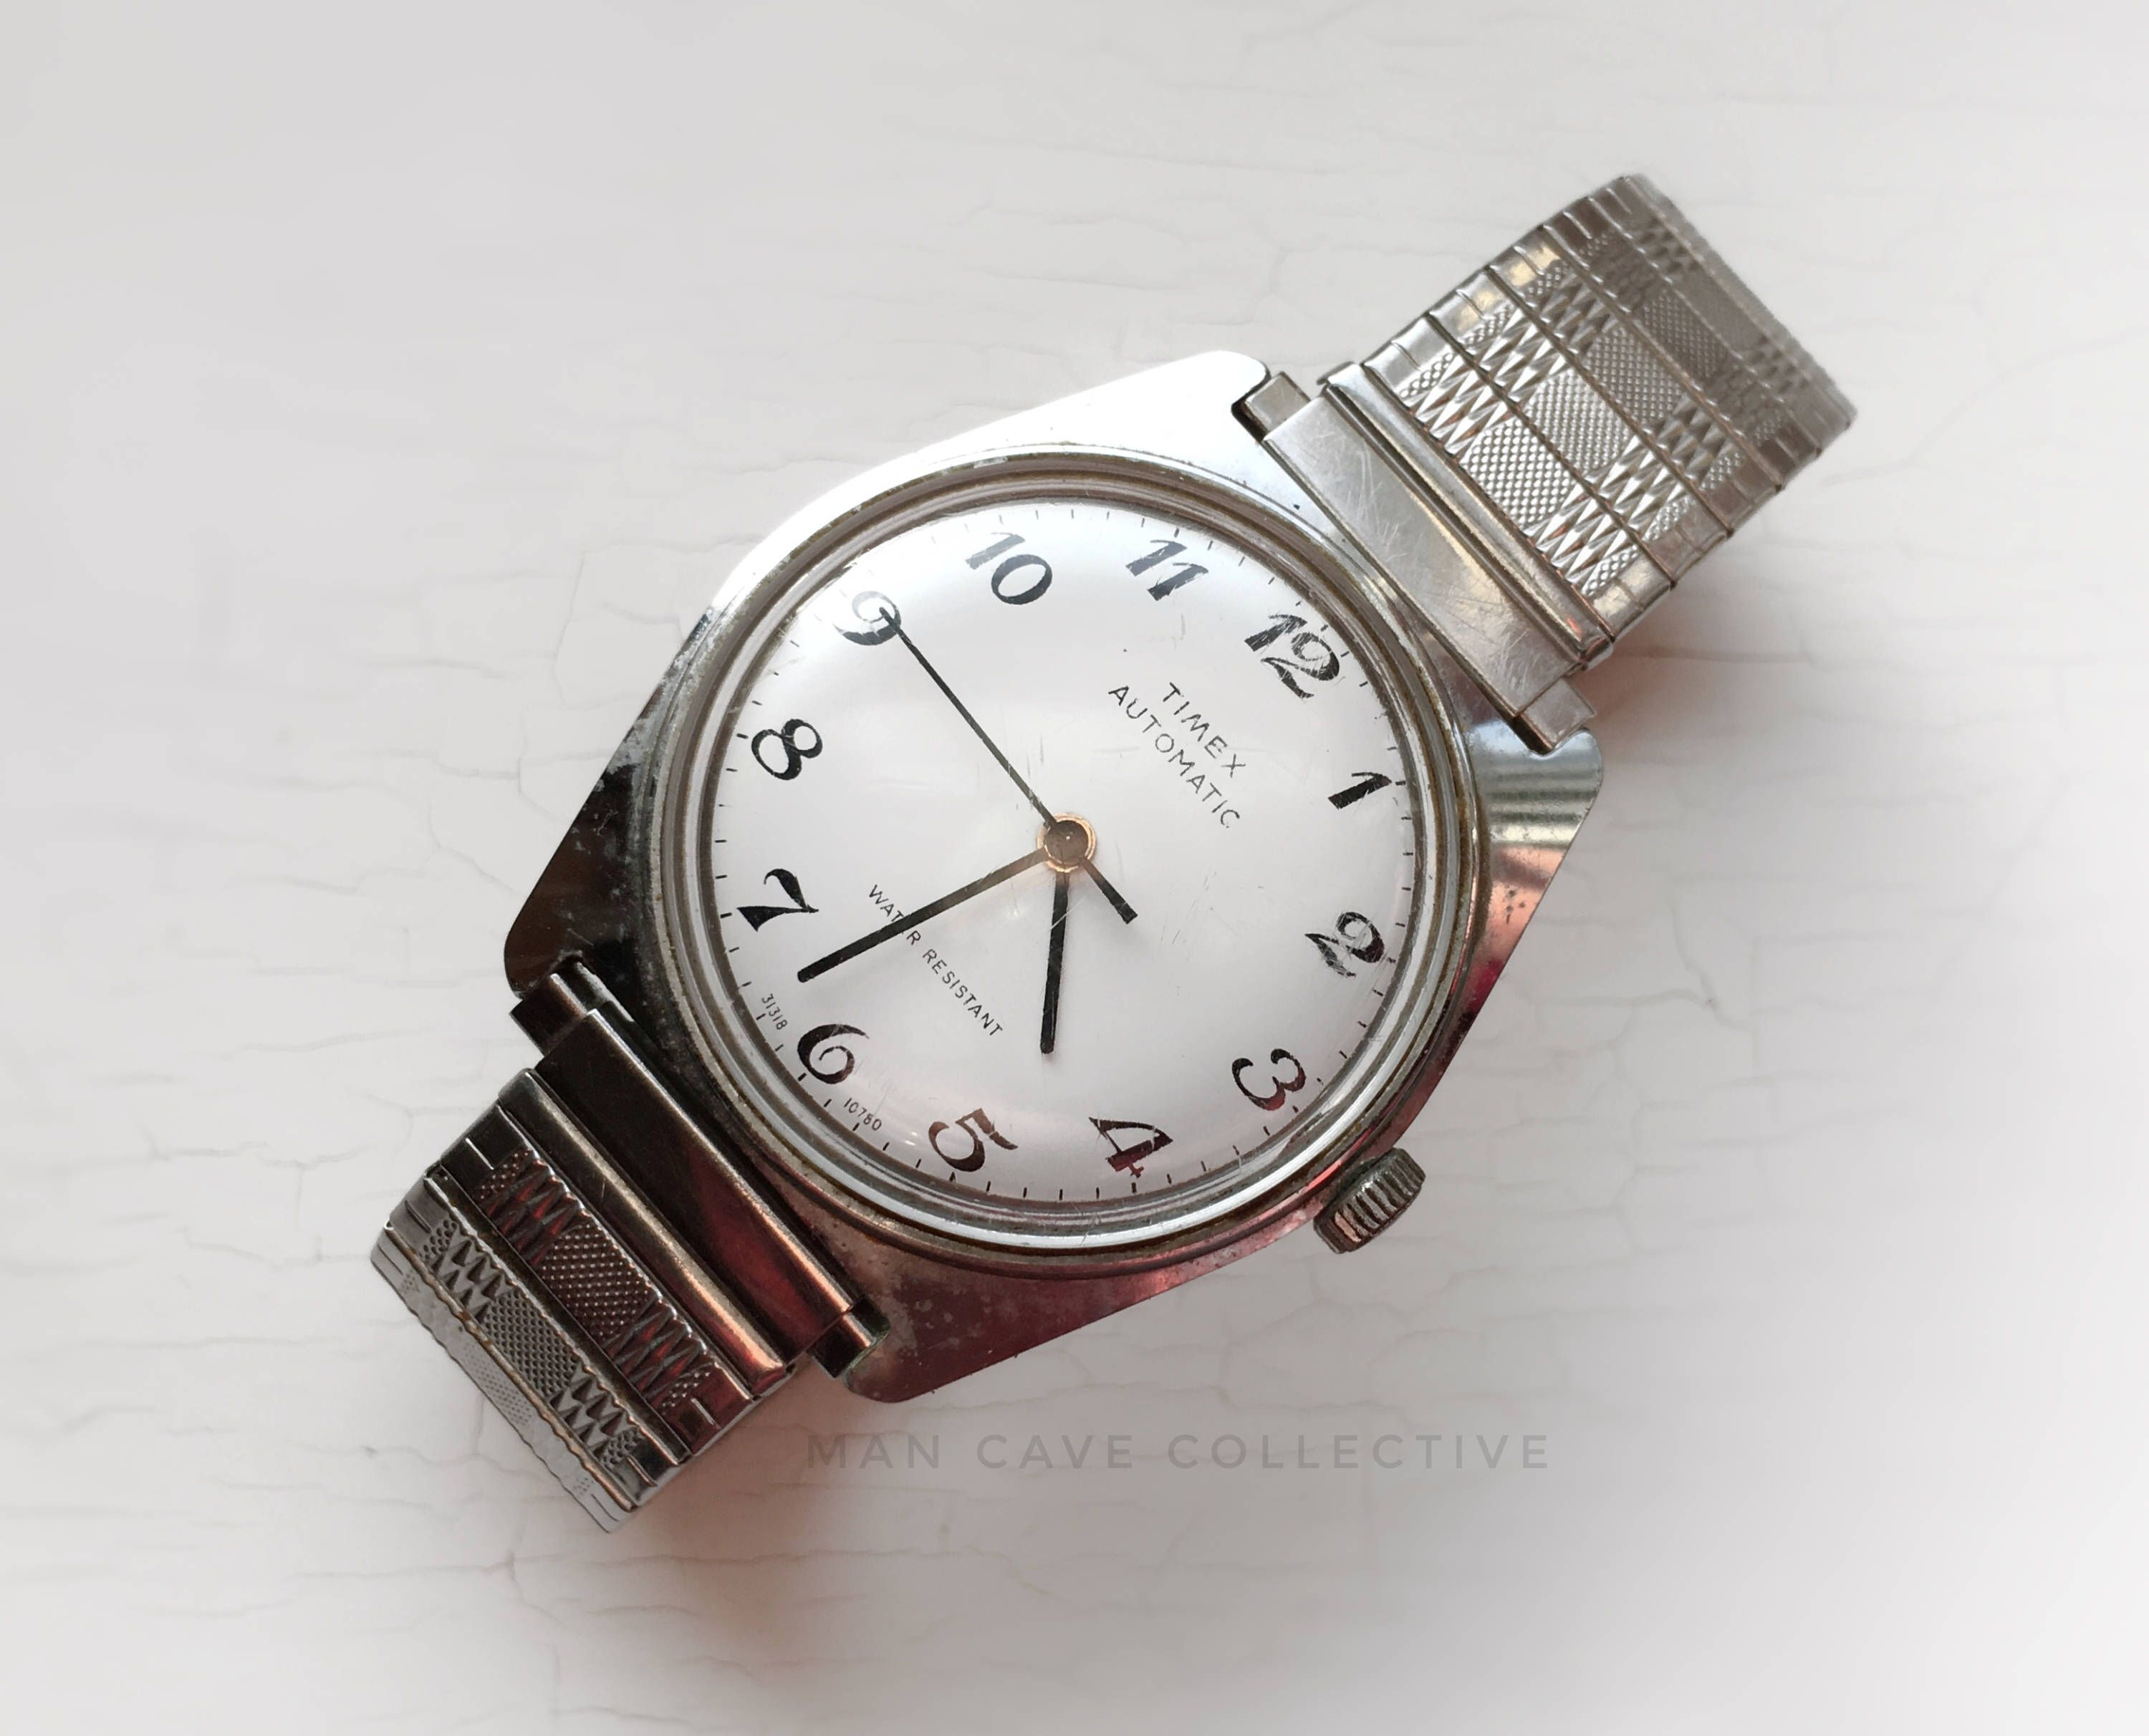 9da016521 Runs Automatic Timex Windup Water Resistant Watch Vintage Round Large  Silver Stretch Band Men's Women's Accessories